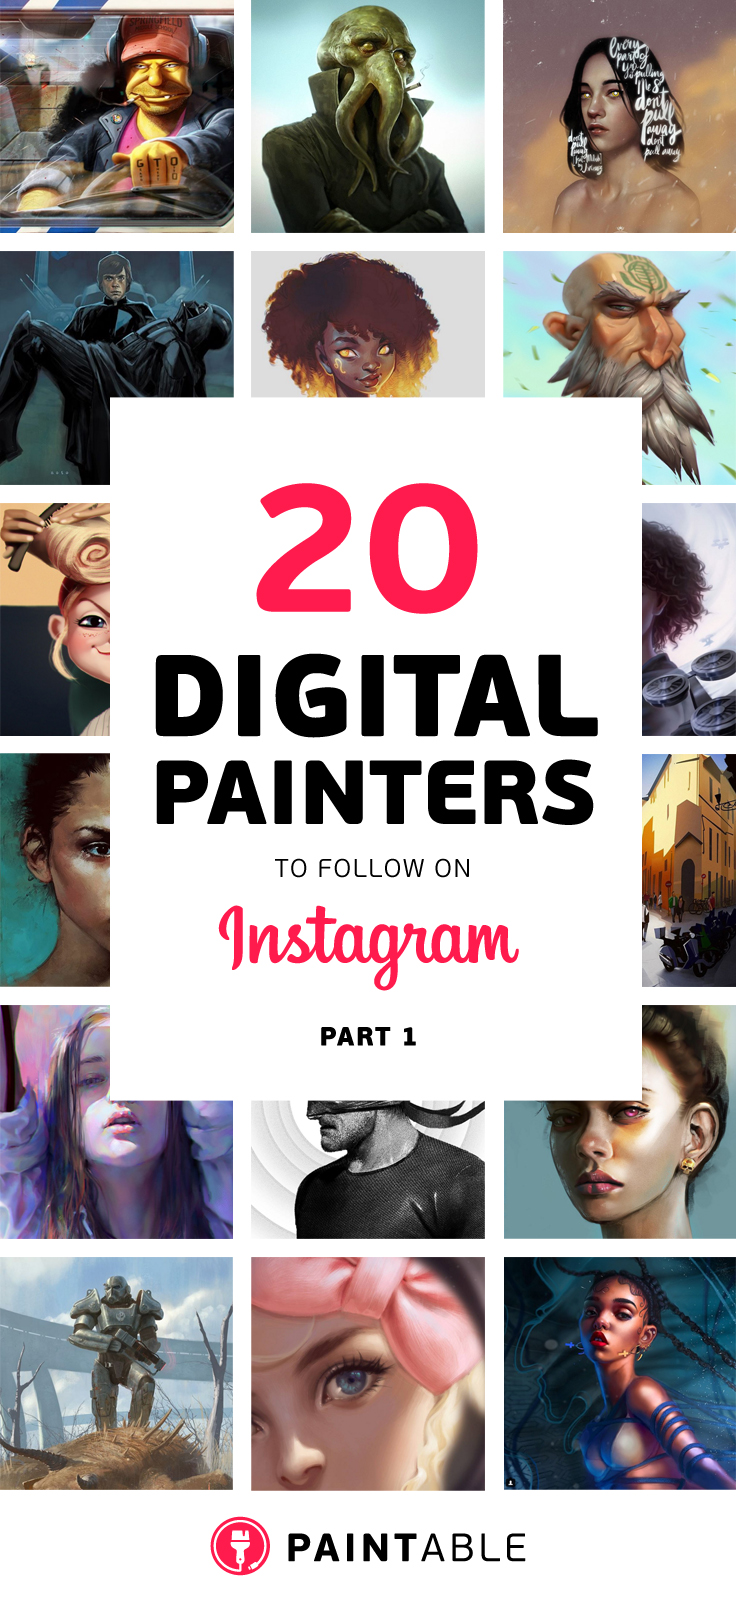 20 Digital Painters on Instagram